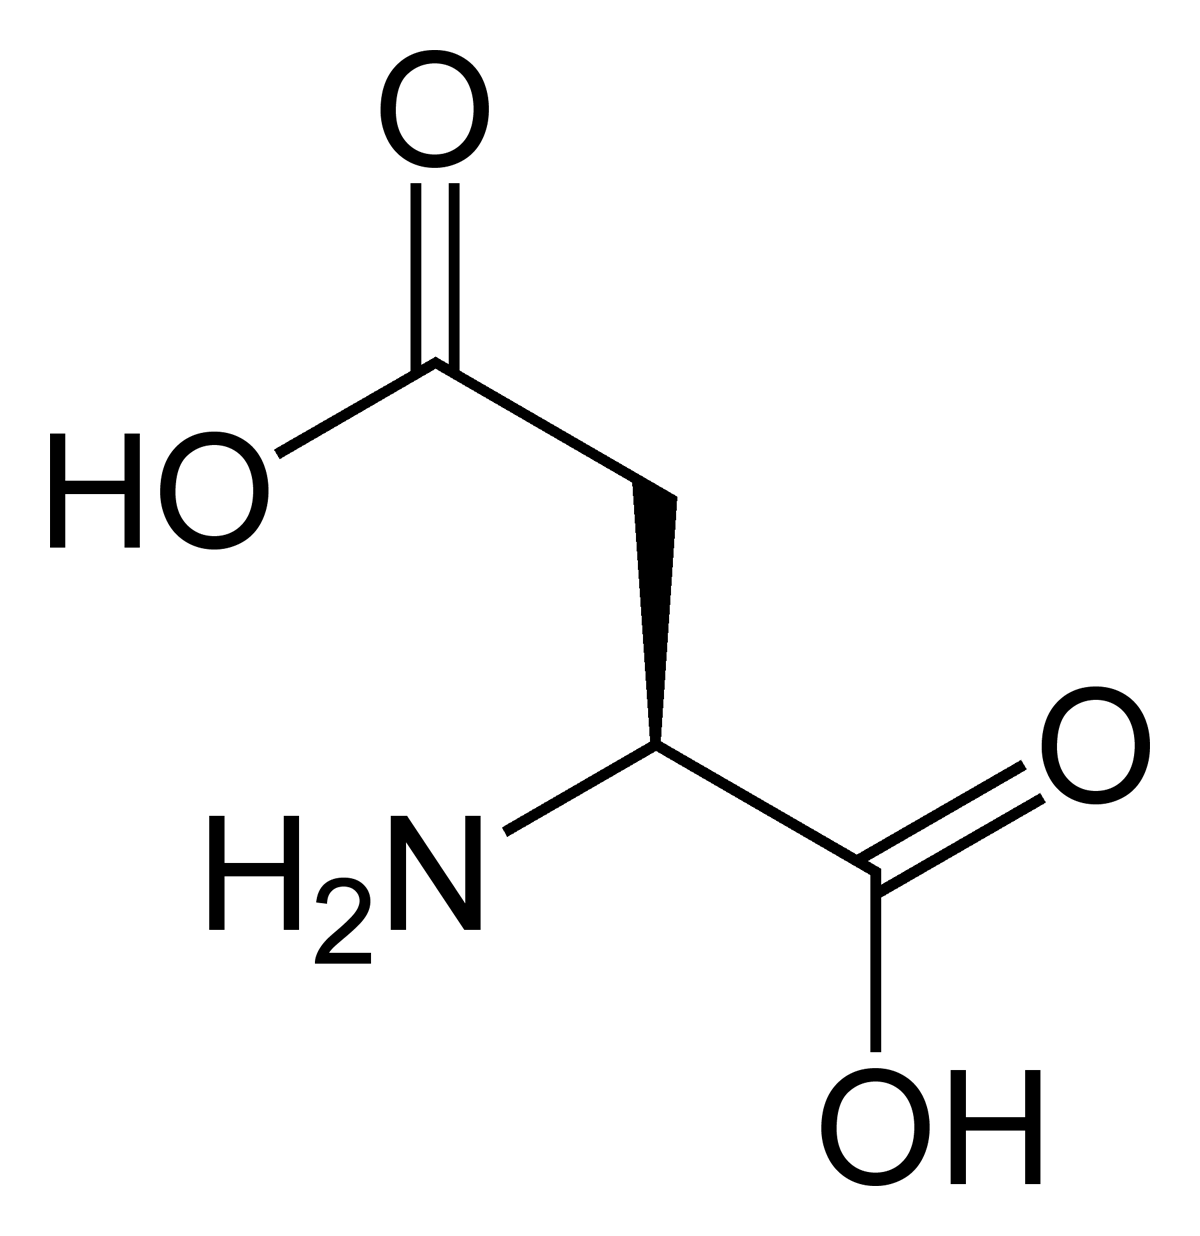 Aspartic acid lewis structure